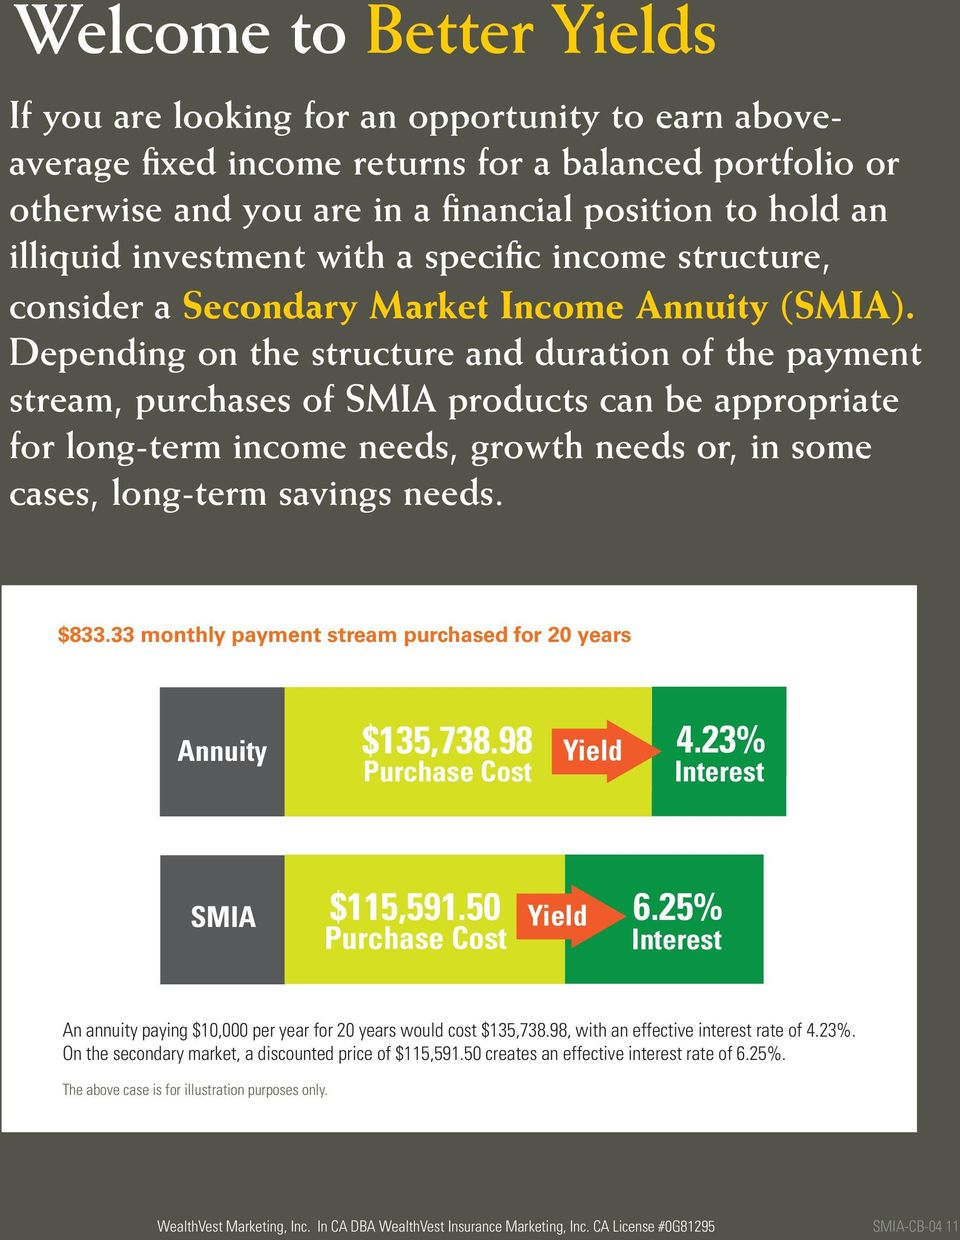 Depending on the structure and duration of the payment stream, purchases of SMIA products can be appropriate for long-term income needs, growth needs or, in some cases, long-term savings needs. $833.